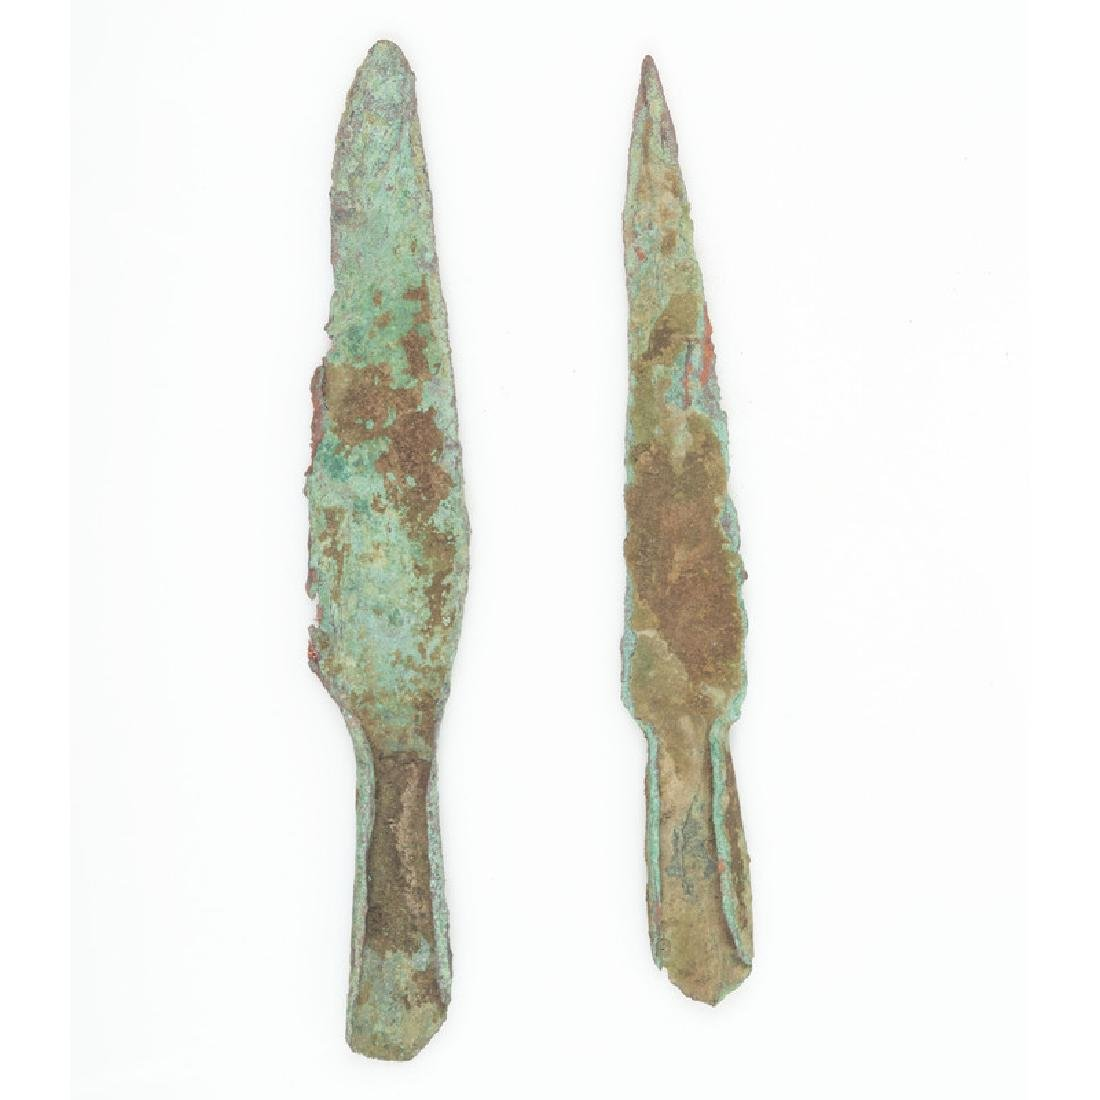 A Pair of Old Copper Culture Socketed Spear Points,